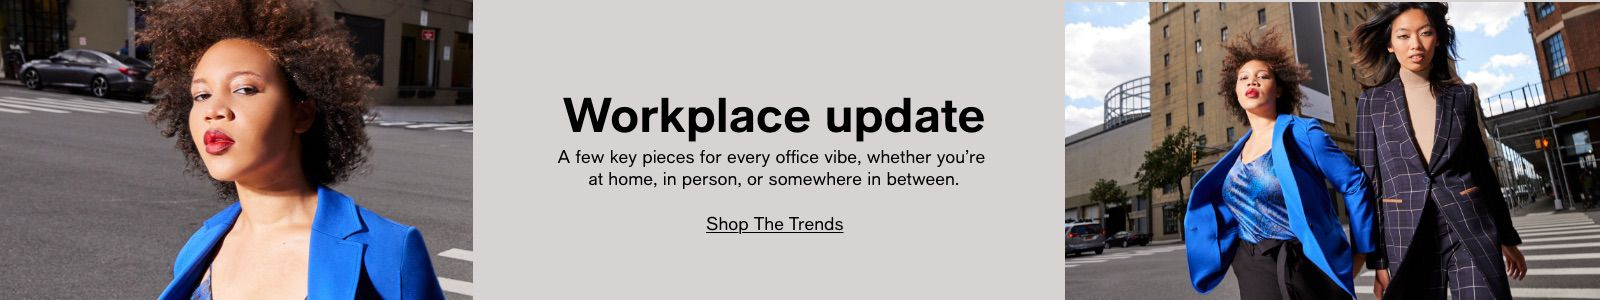 Workplace update, A few key pieces for every vibe, whether you're at home, in person, or somewhere in between, Shop The Trends